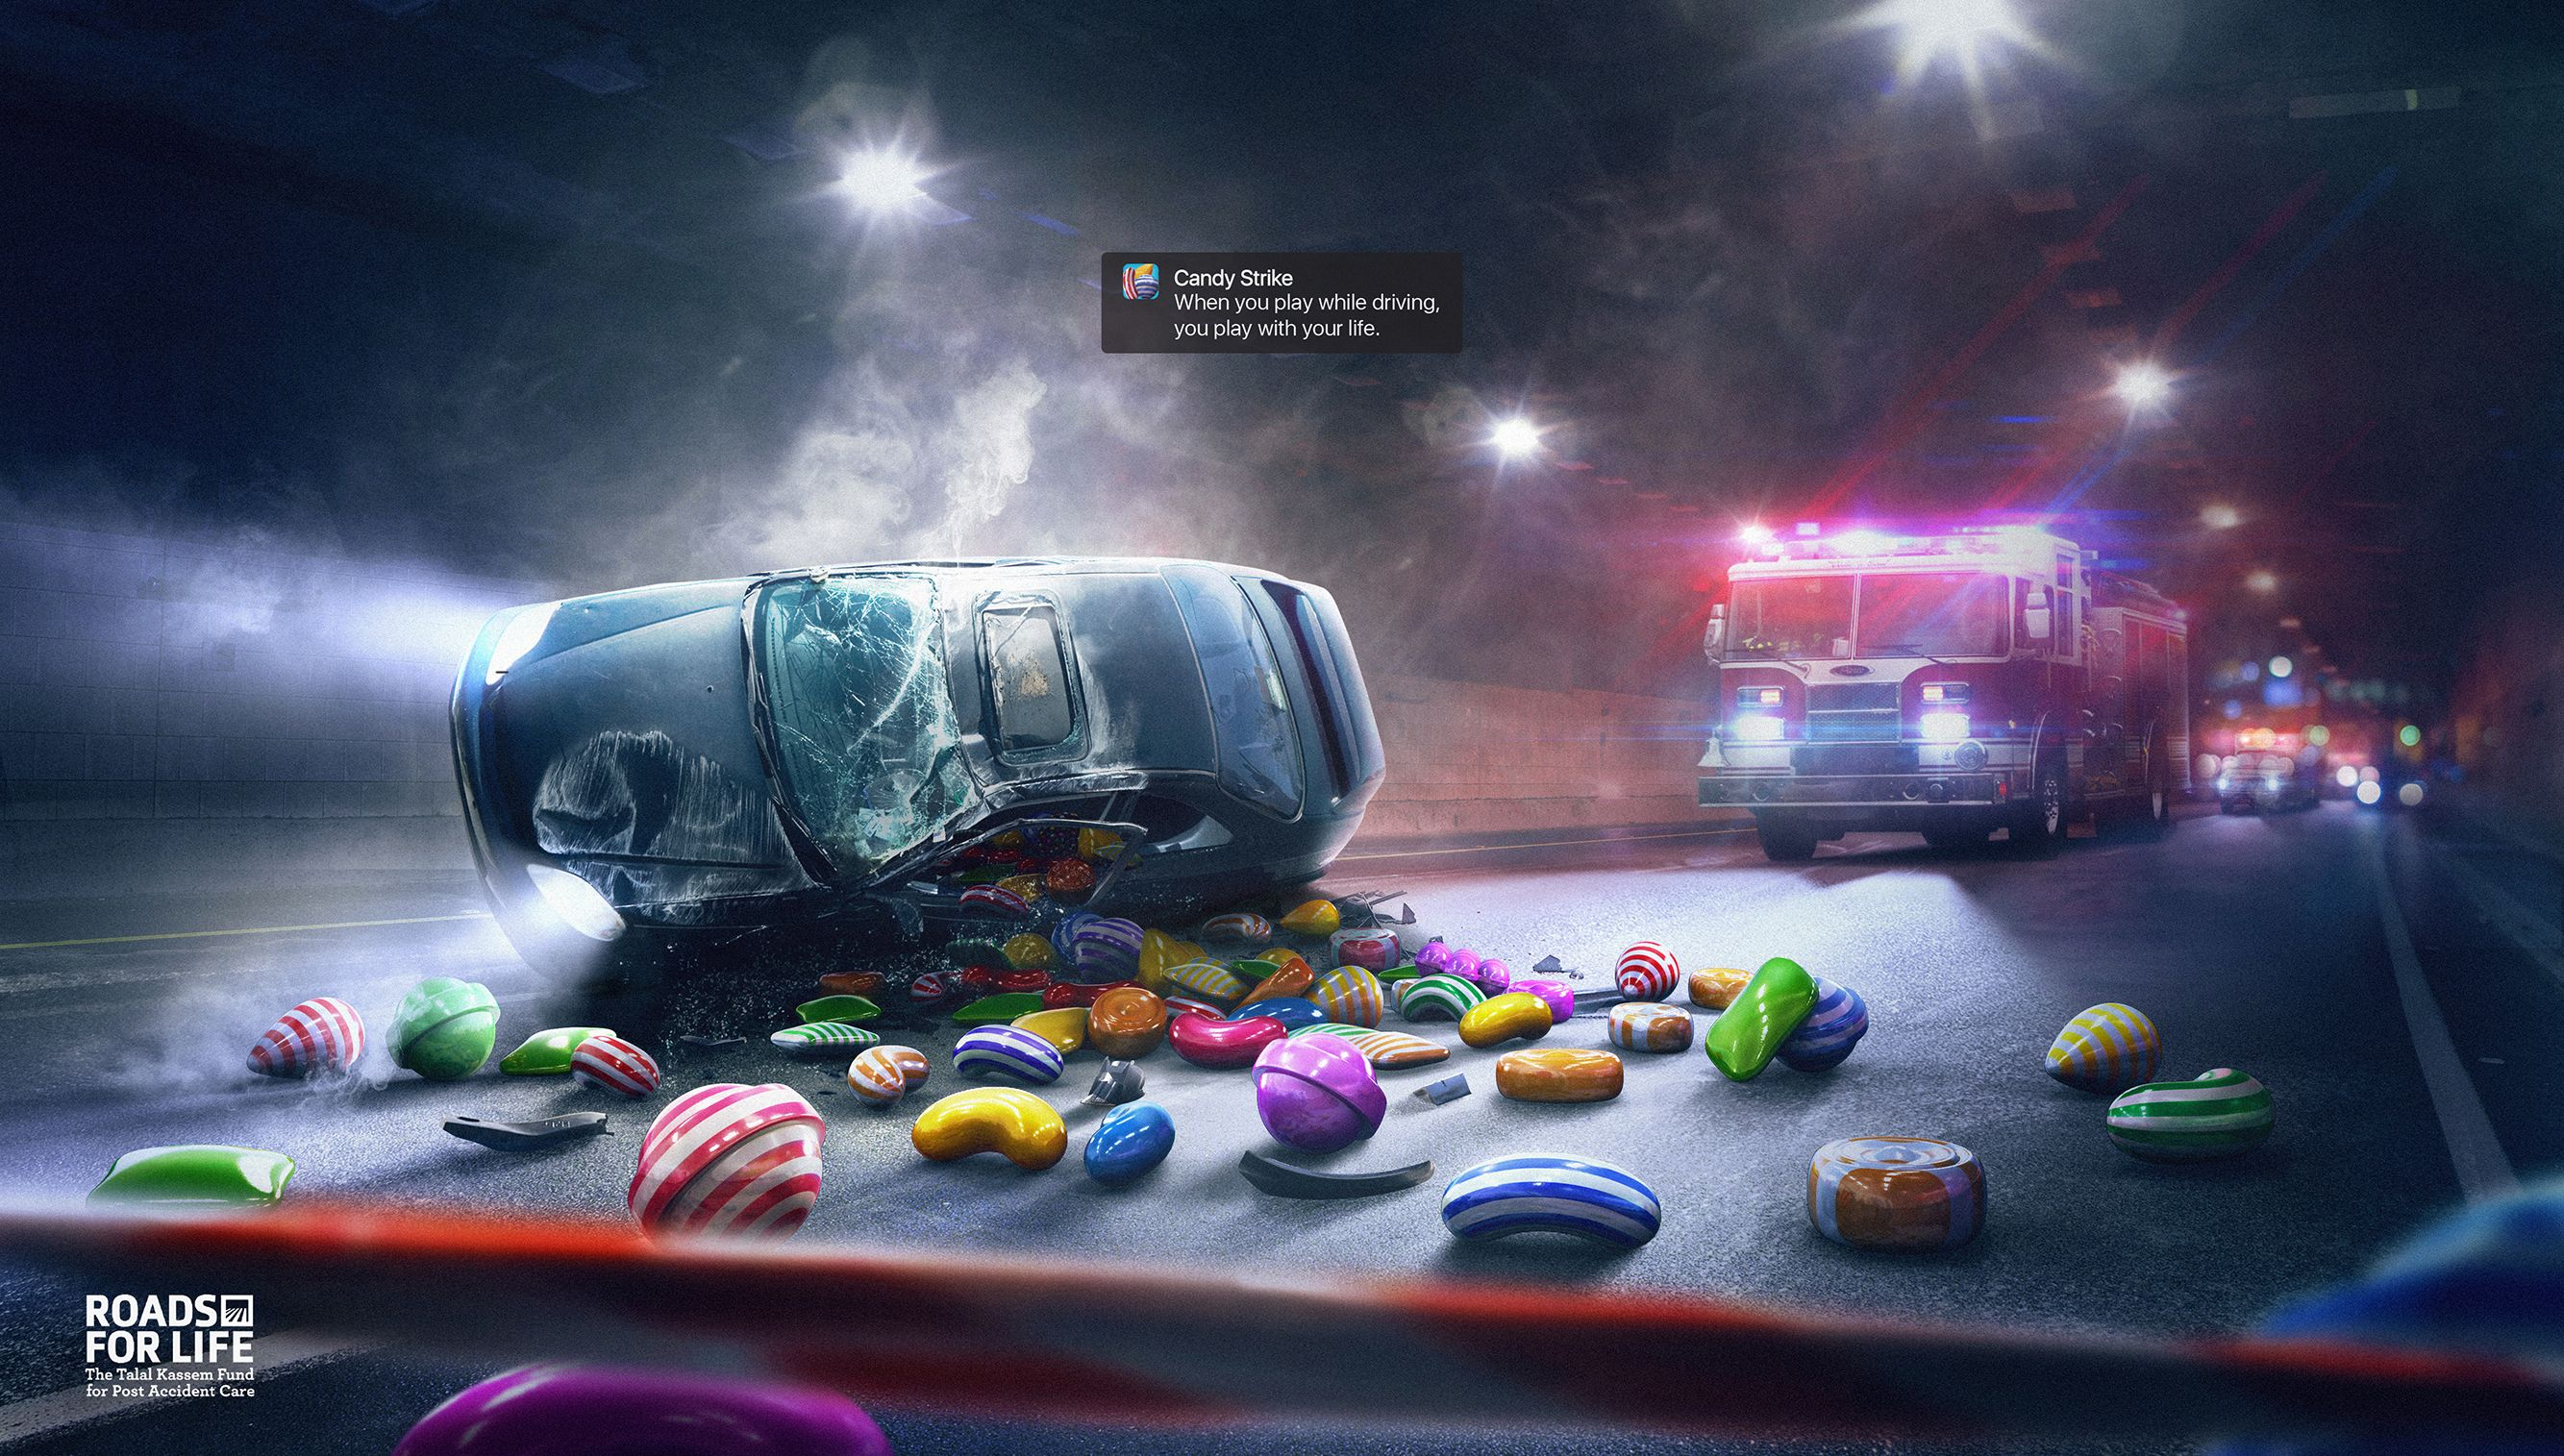 Don't Play & Drive on Behance